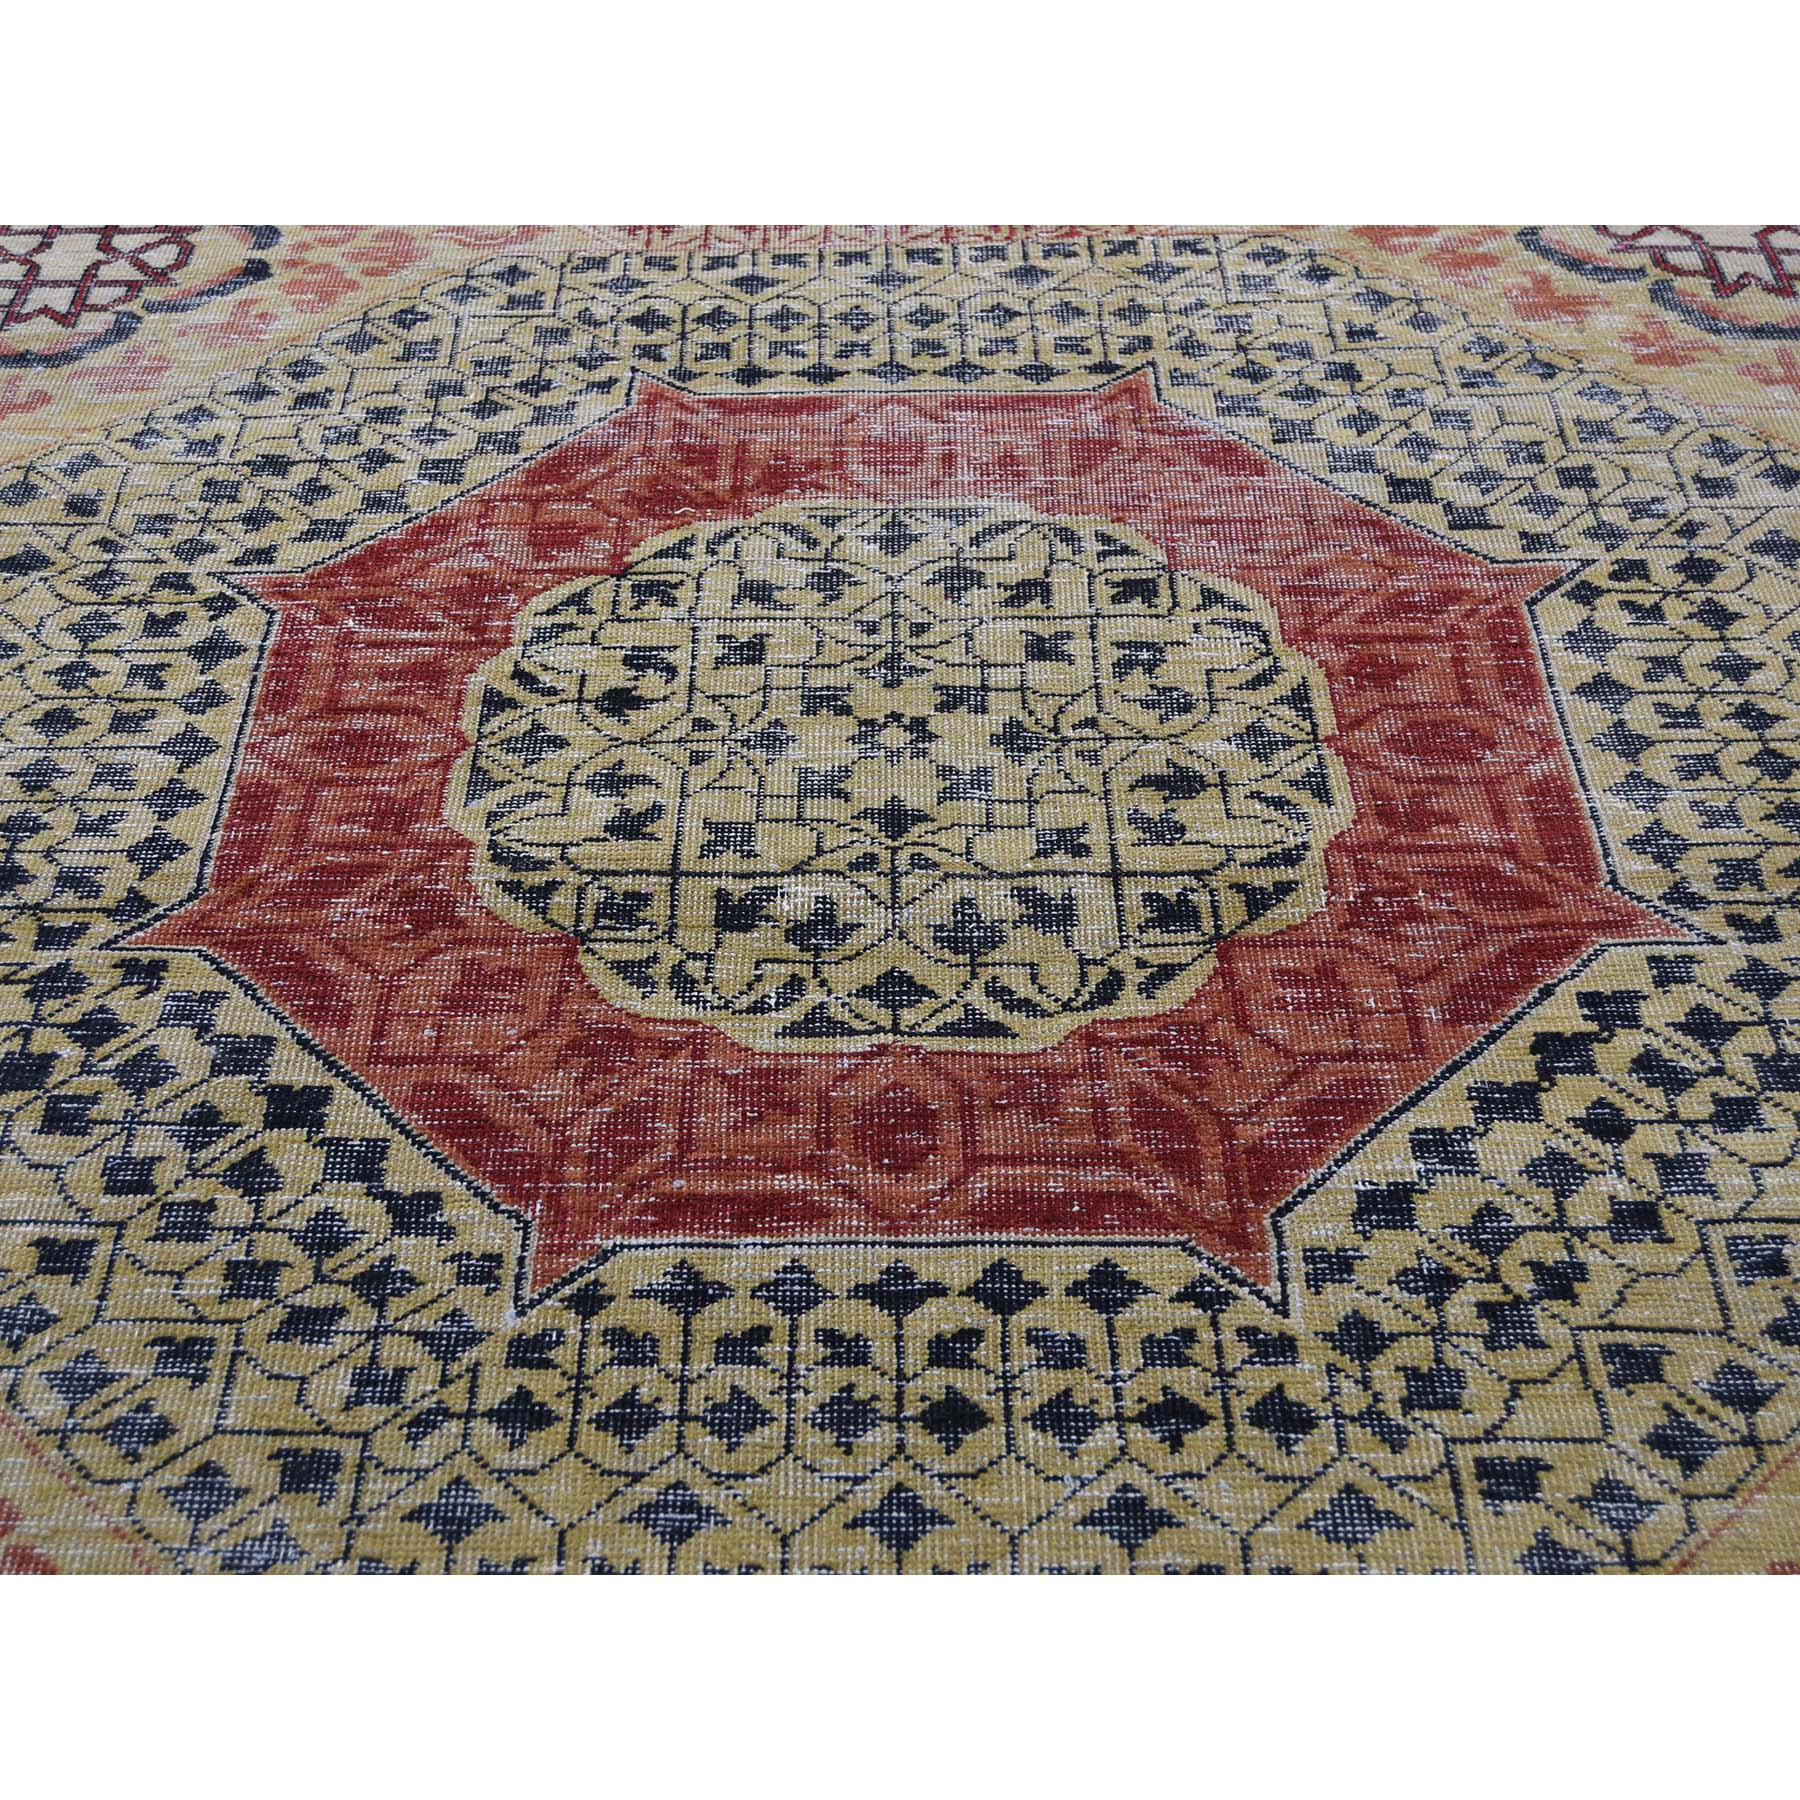 10-x13-8  Vintage Look Mamluk Zero Pile Shaved Low Worn Wool Rug